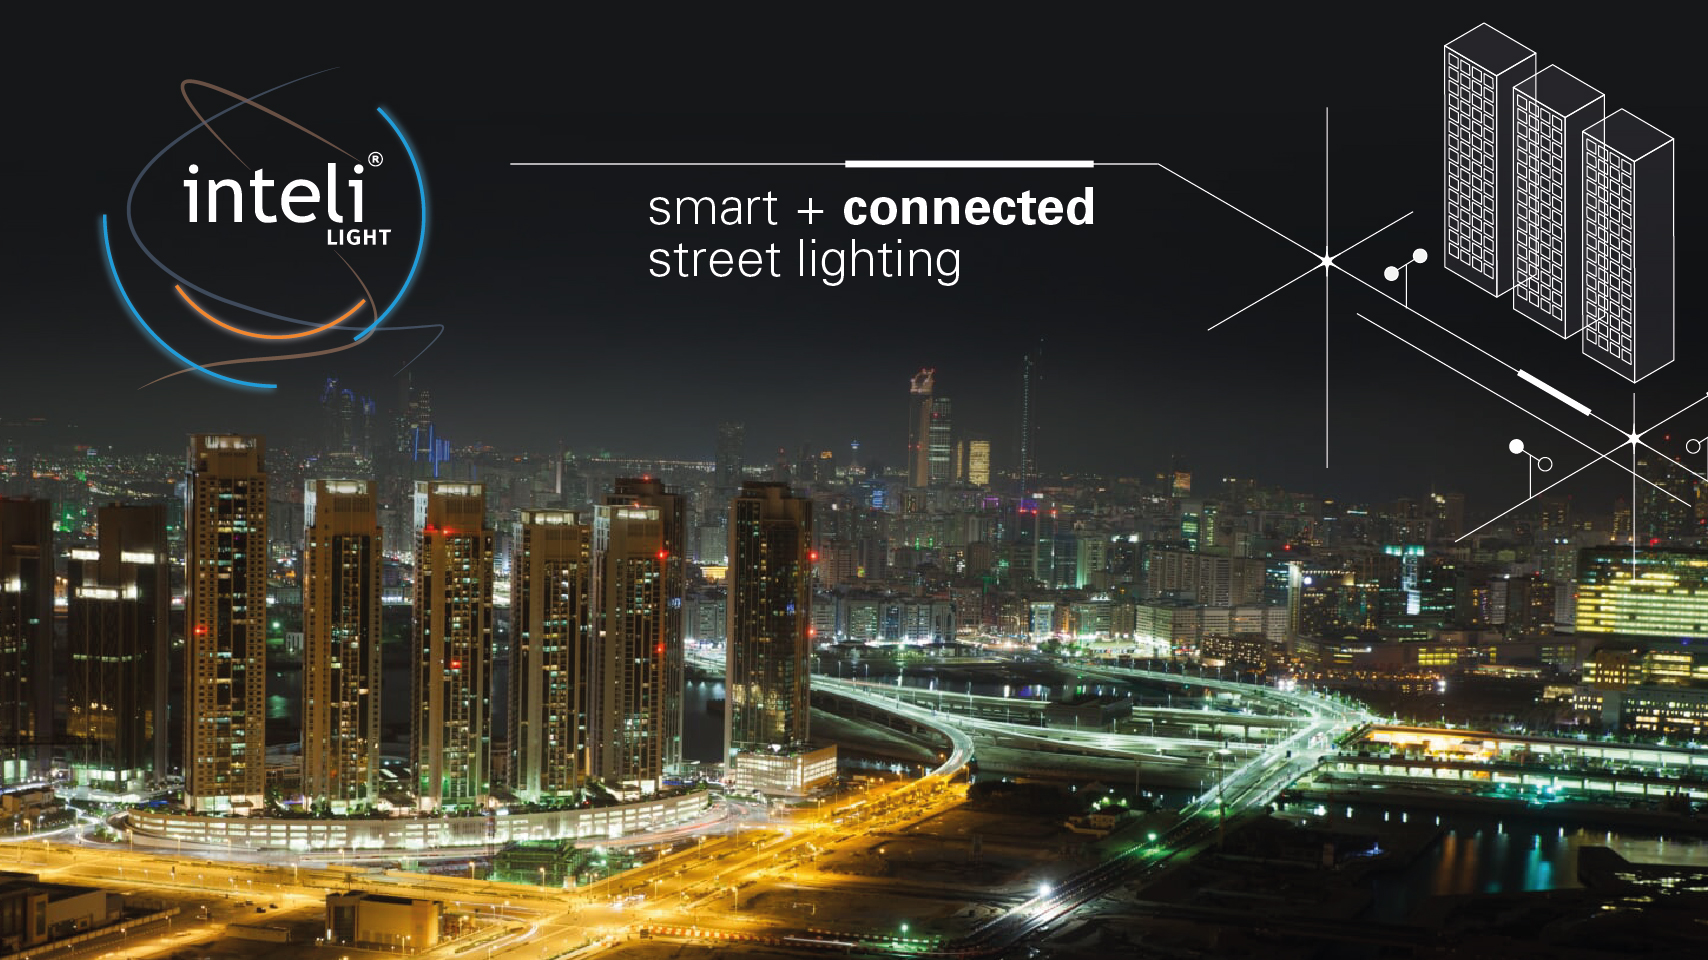 inteliLIGHT® now controls more than 150.000 street lights in Saudi Arabia